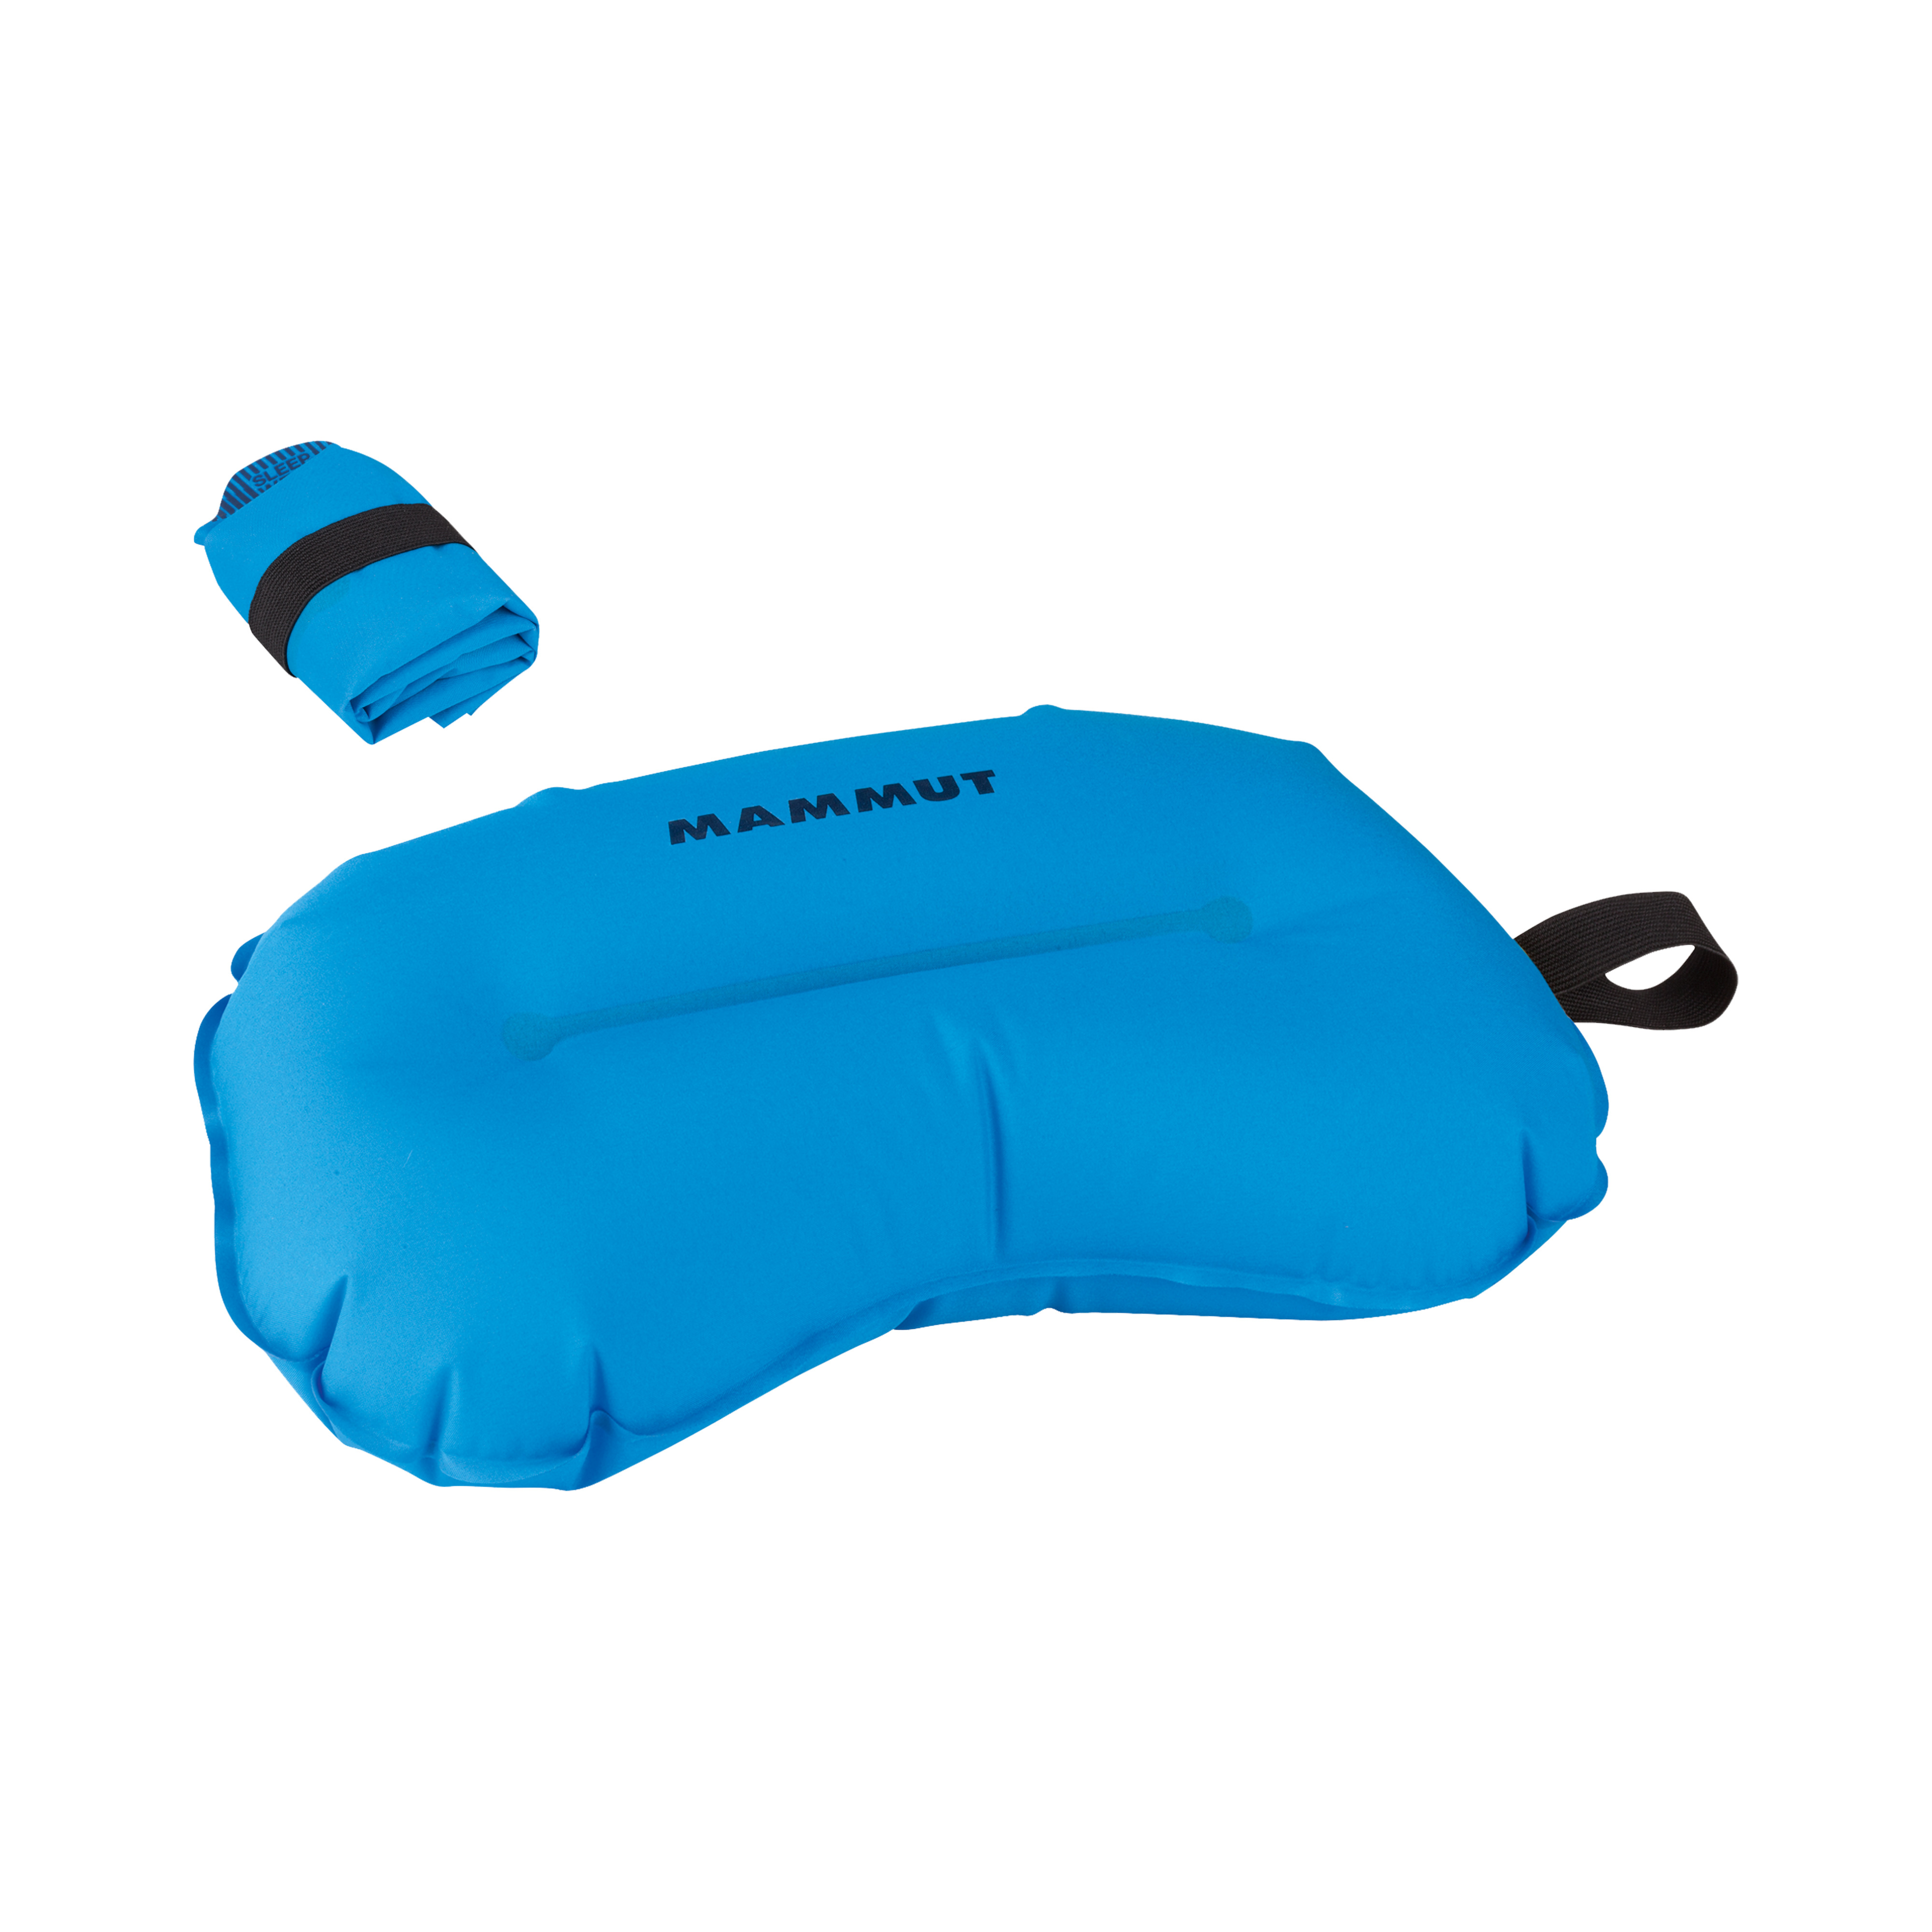 Air Pillow - imperial, one size product image